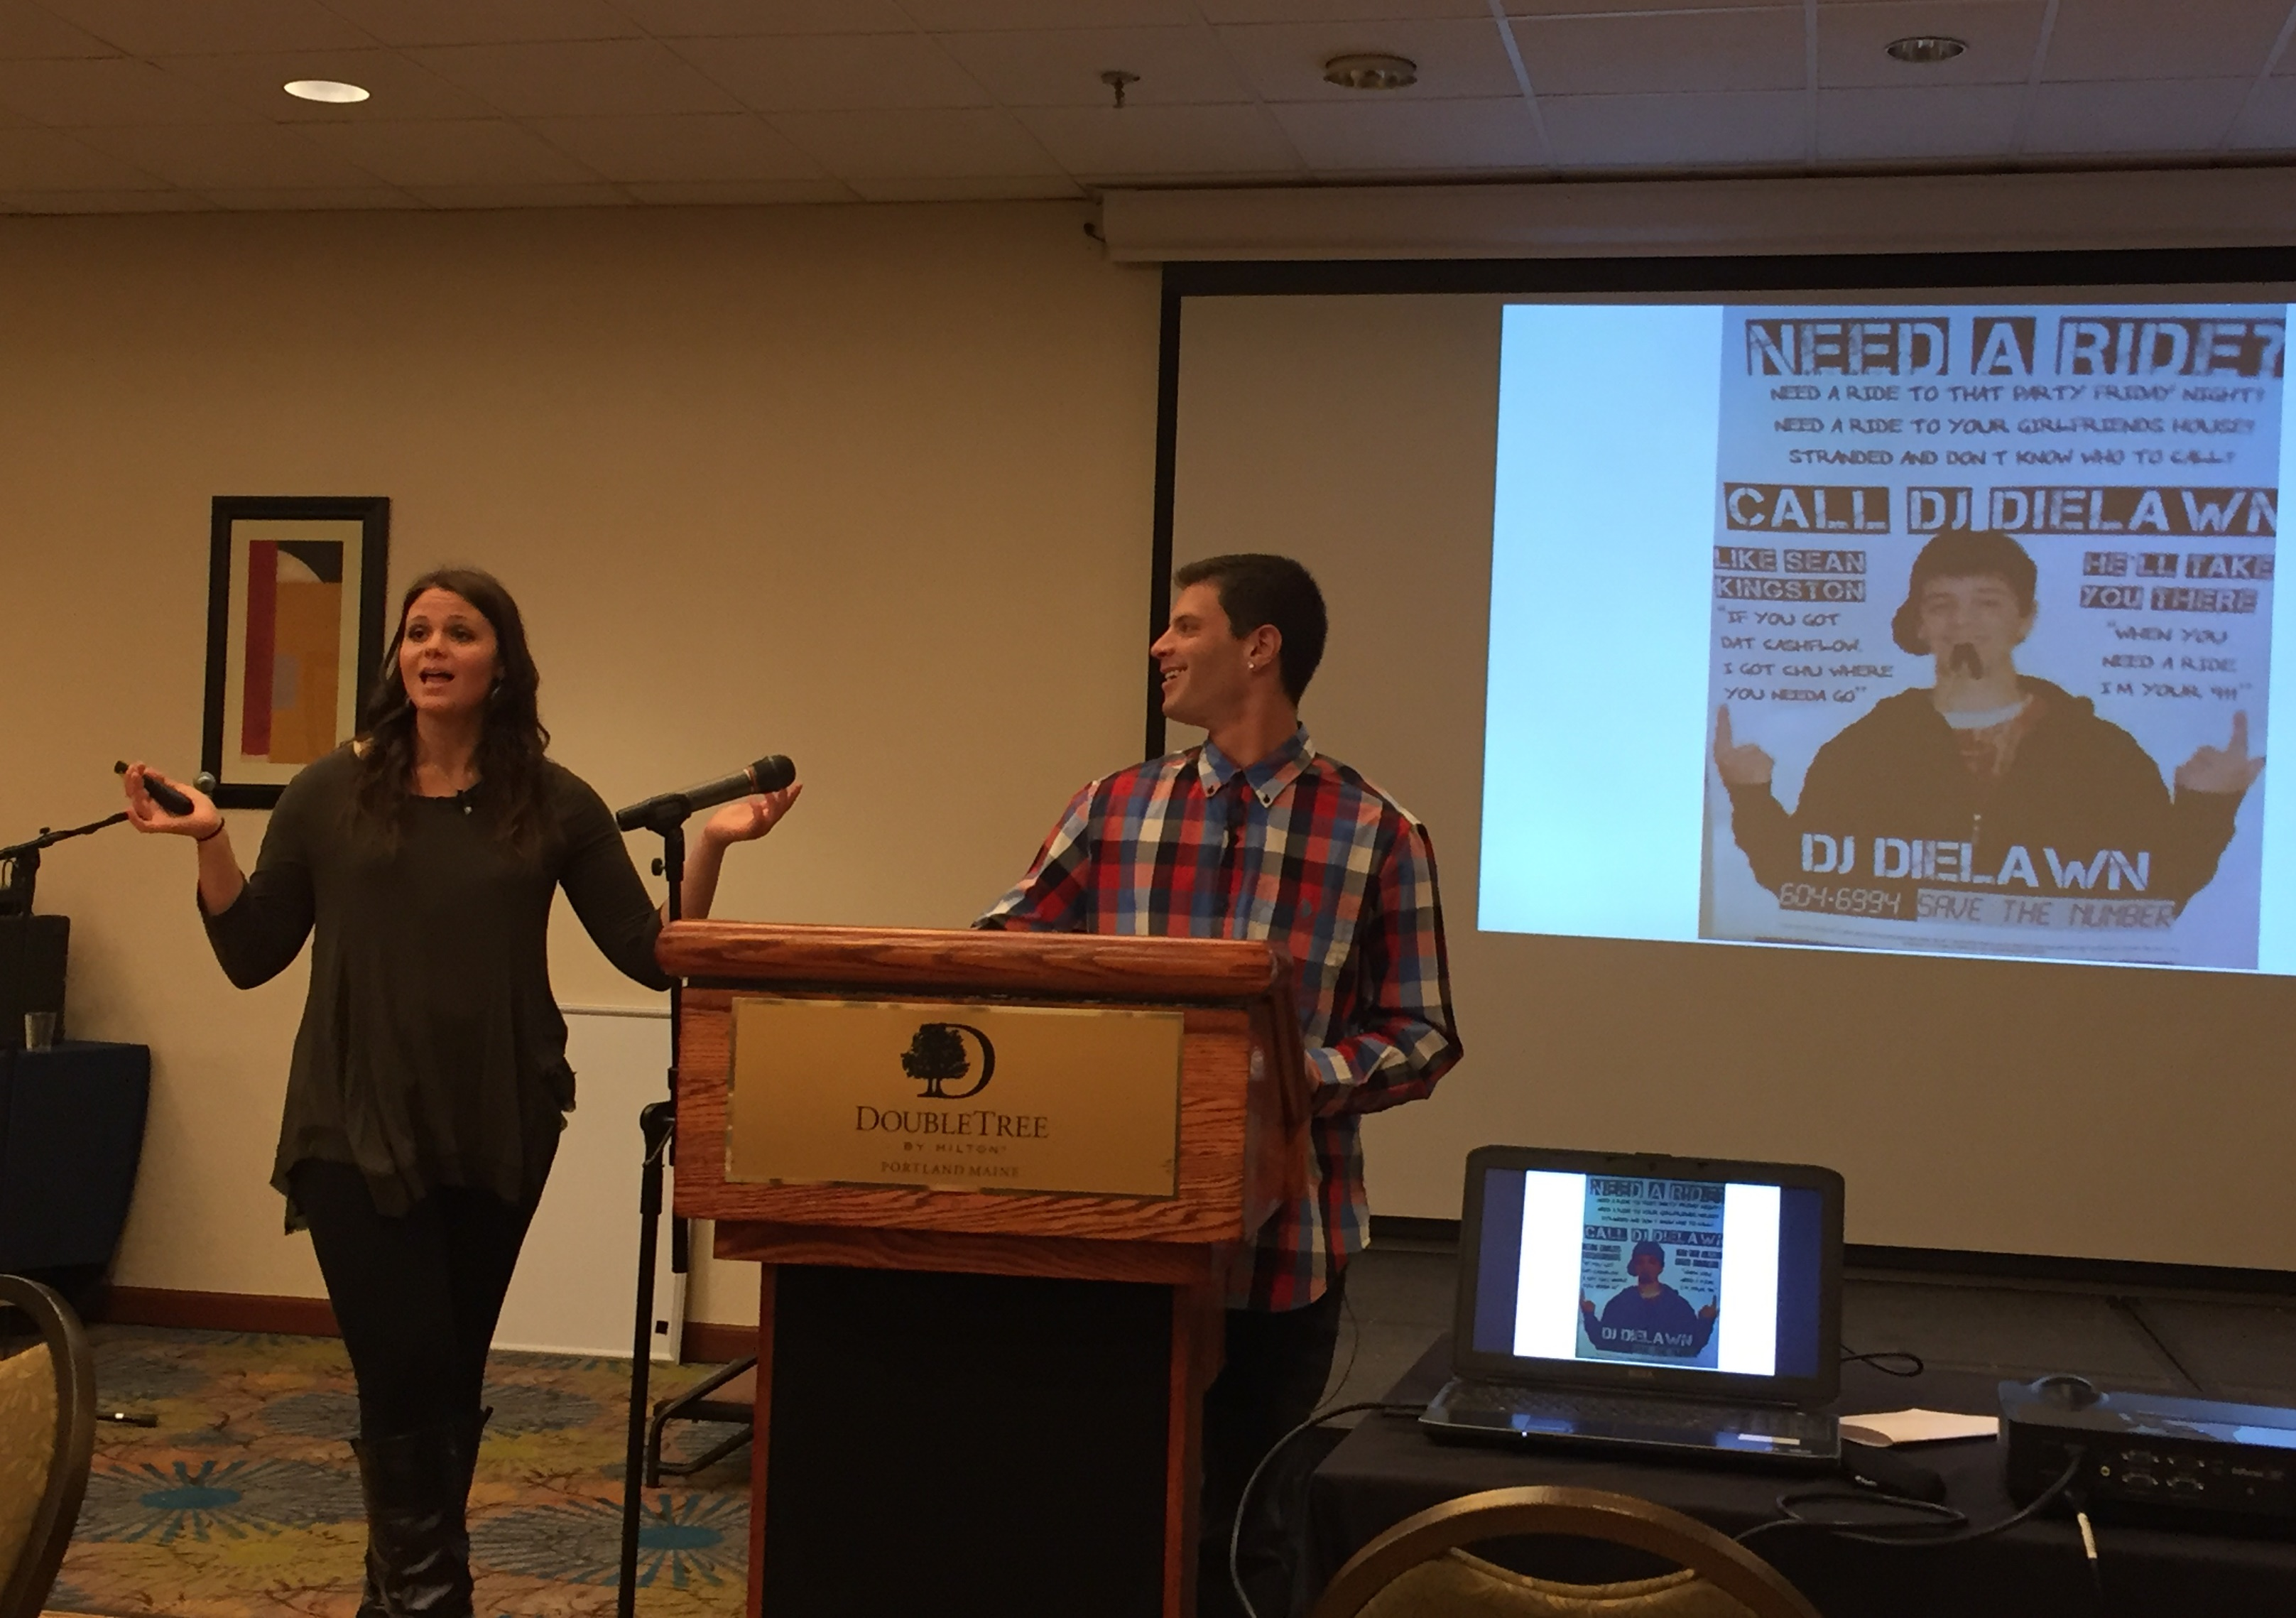 Aane Conference At Lasell College >> Invite Derek And Or Dylan Volk To Speak About Their Story